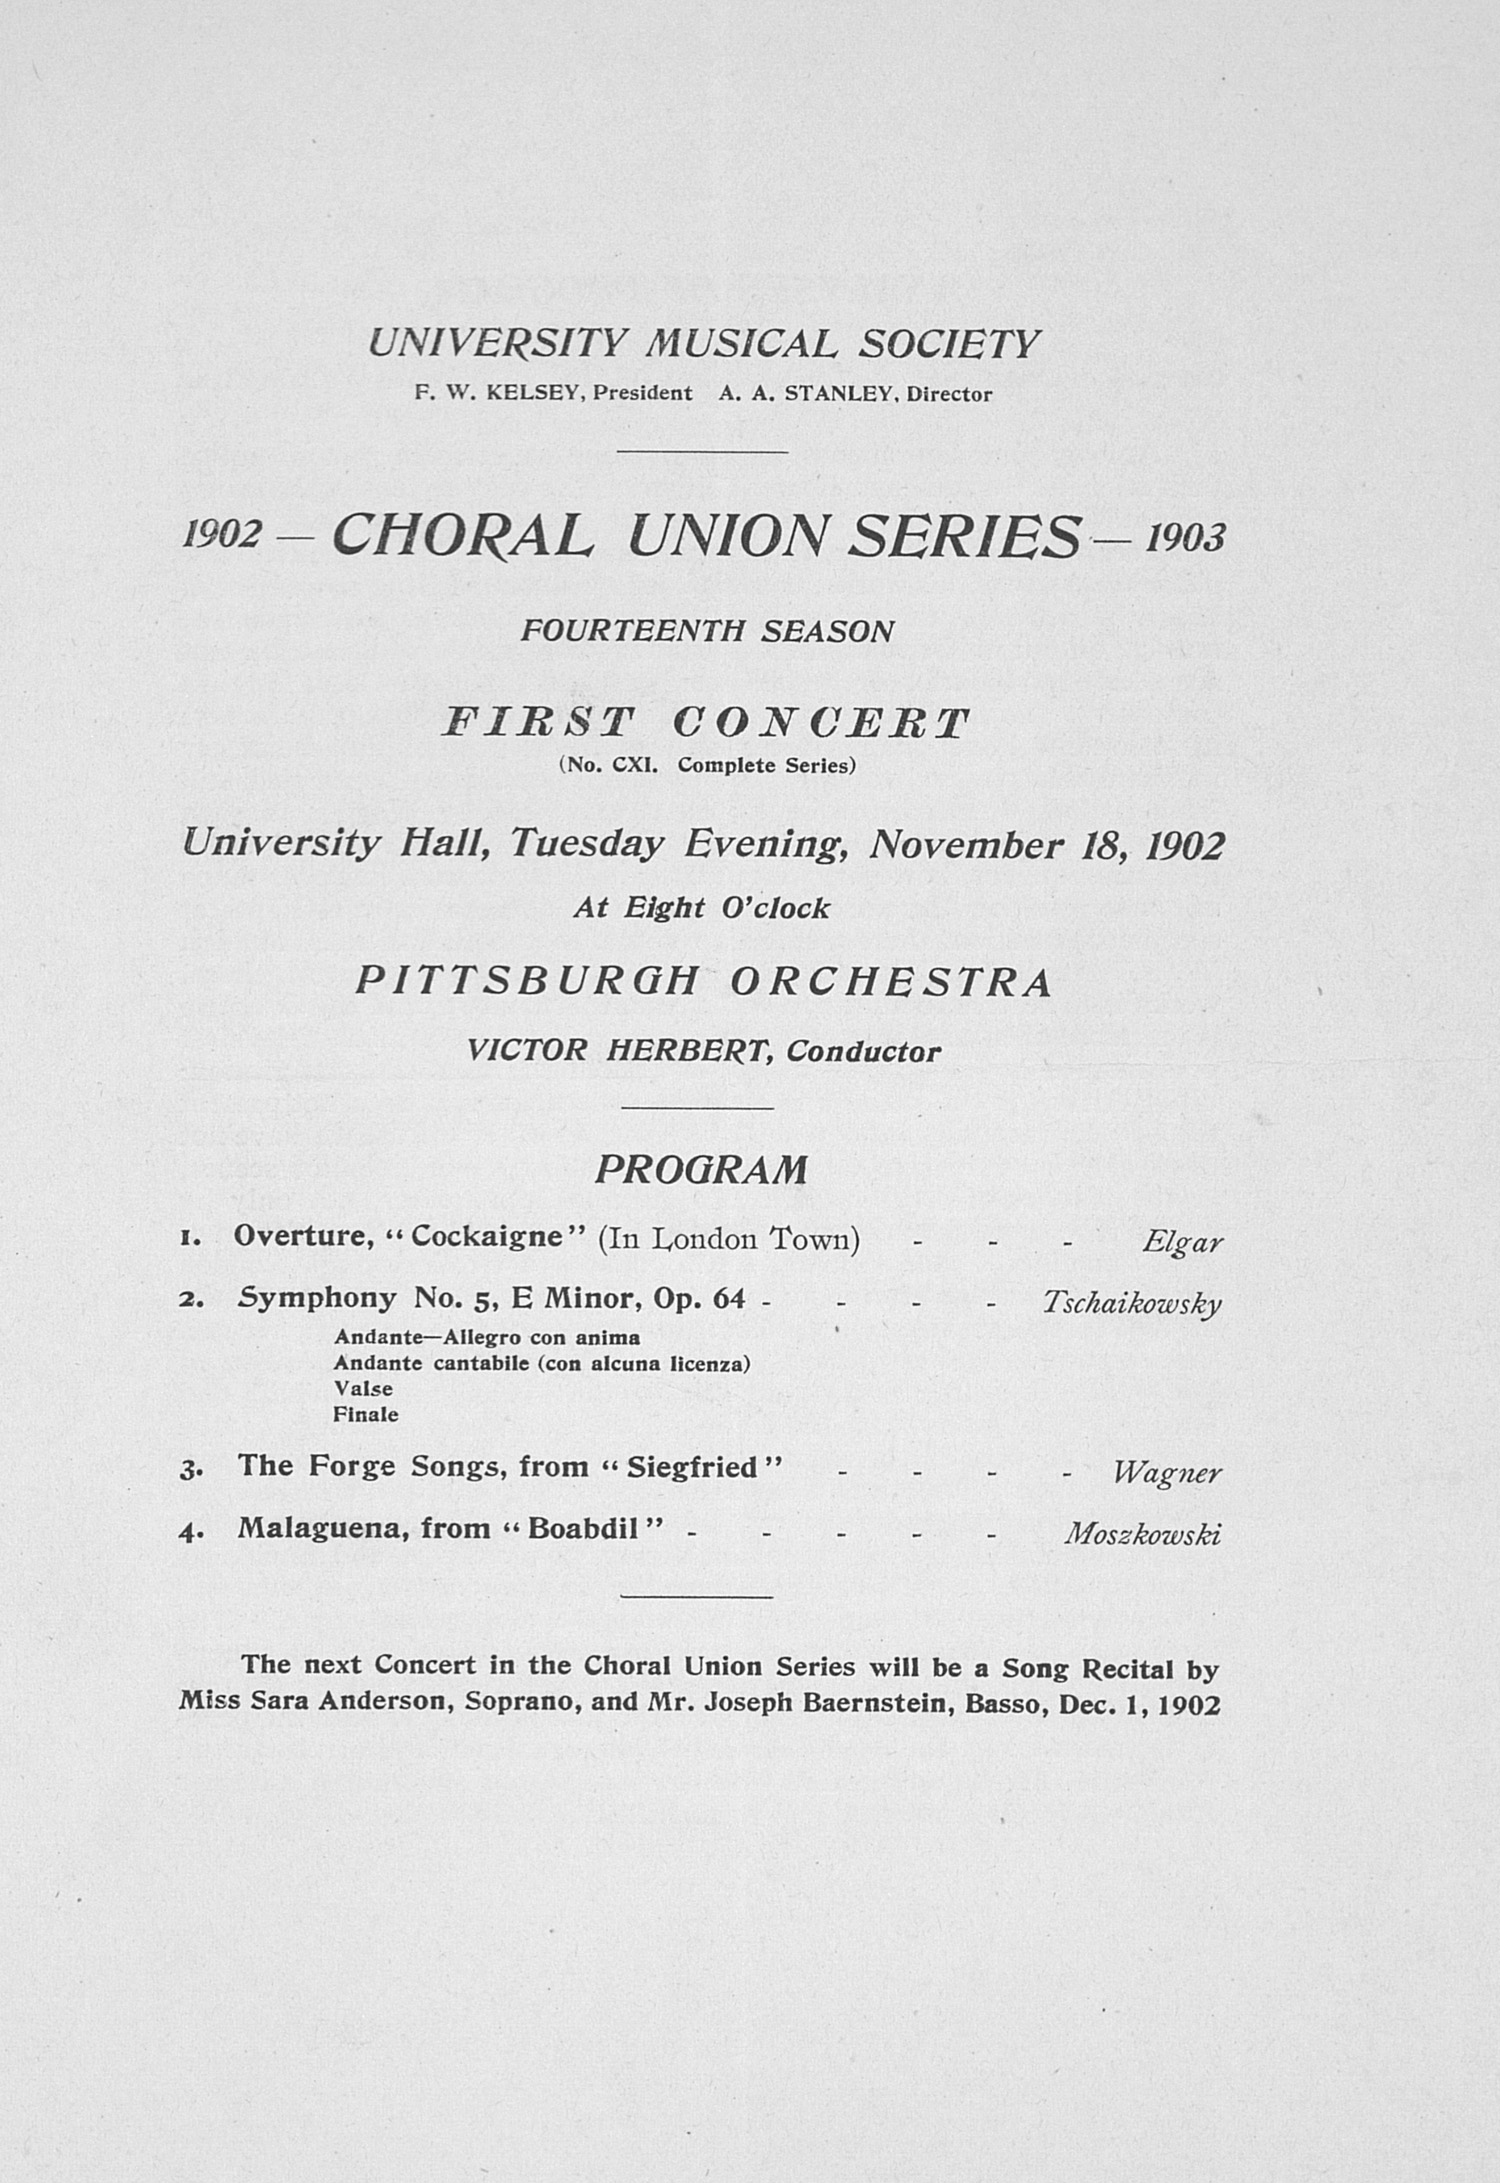 UMS Concert Program, November 18, 1902: Choral Union Series -- Pittsburgh Orchestra image